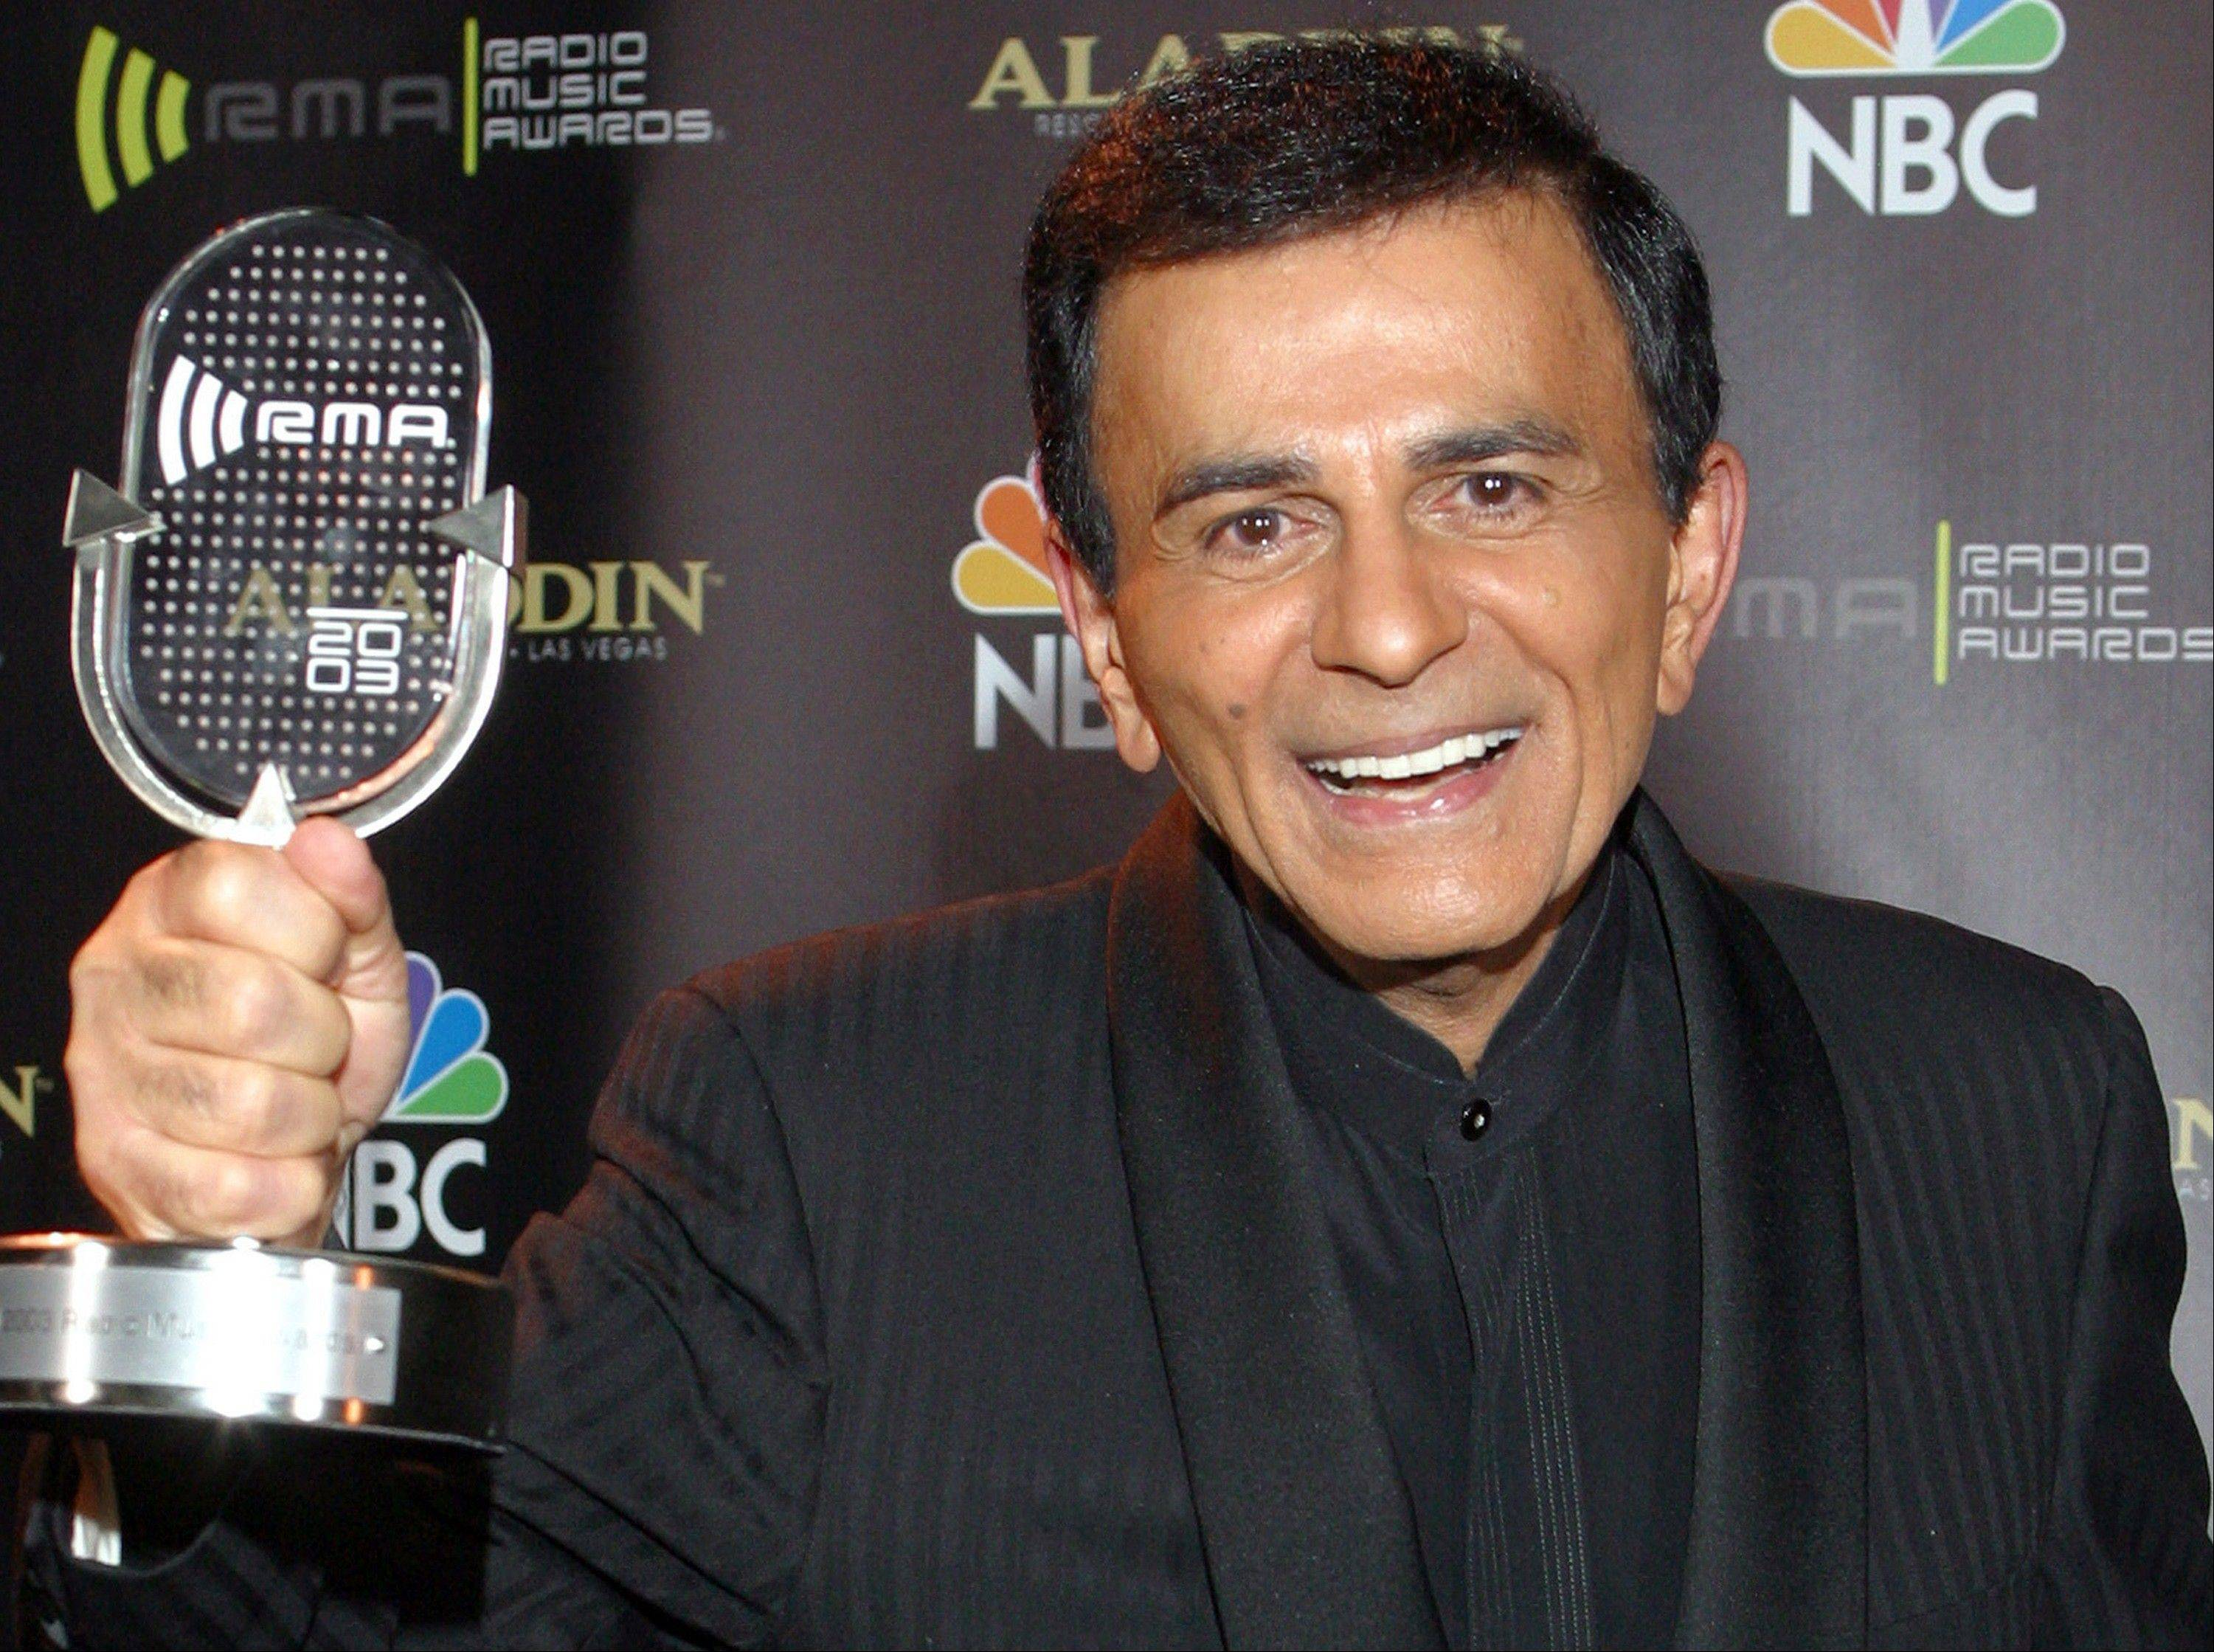 A judge said he did not see an urgent need to intervene in the affairs of Casey Kasem after a court-appointed attorney told him Tuesday the ailing radio host is receiving adequate medical care for advanced Parkinson's disease.